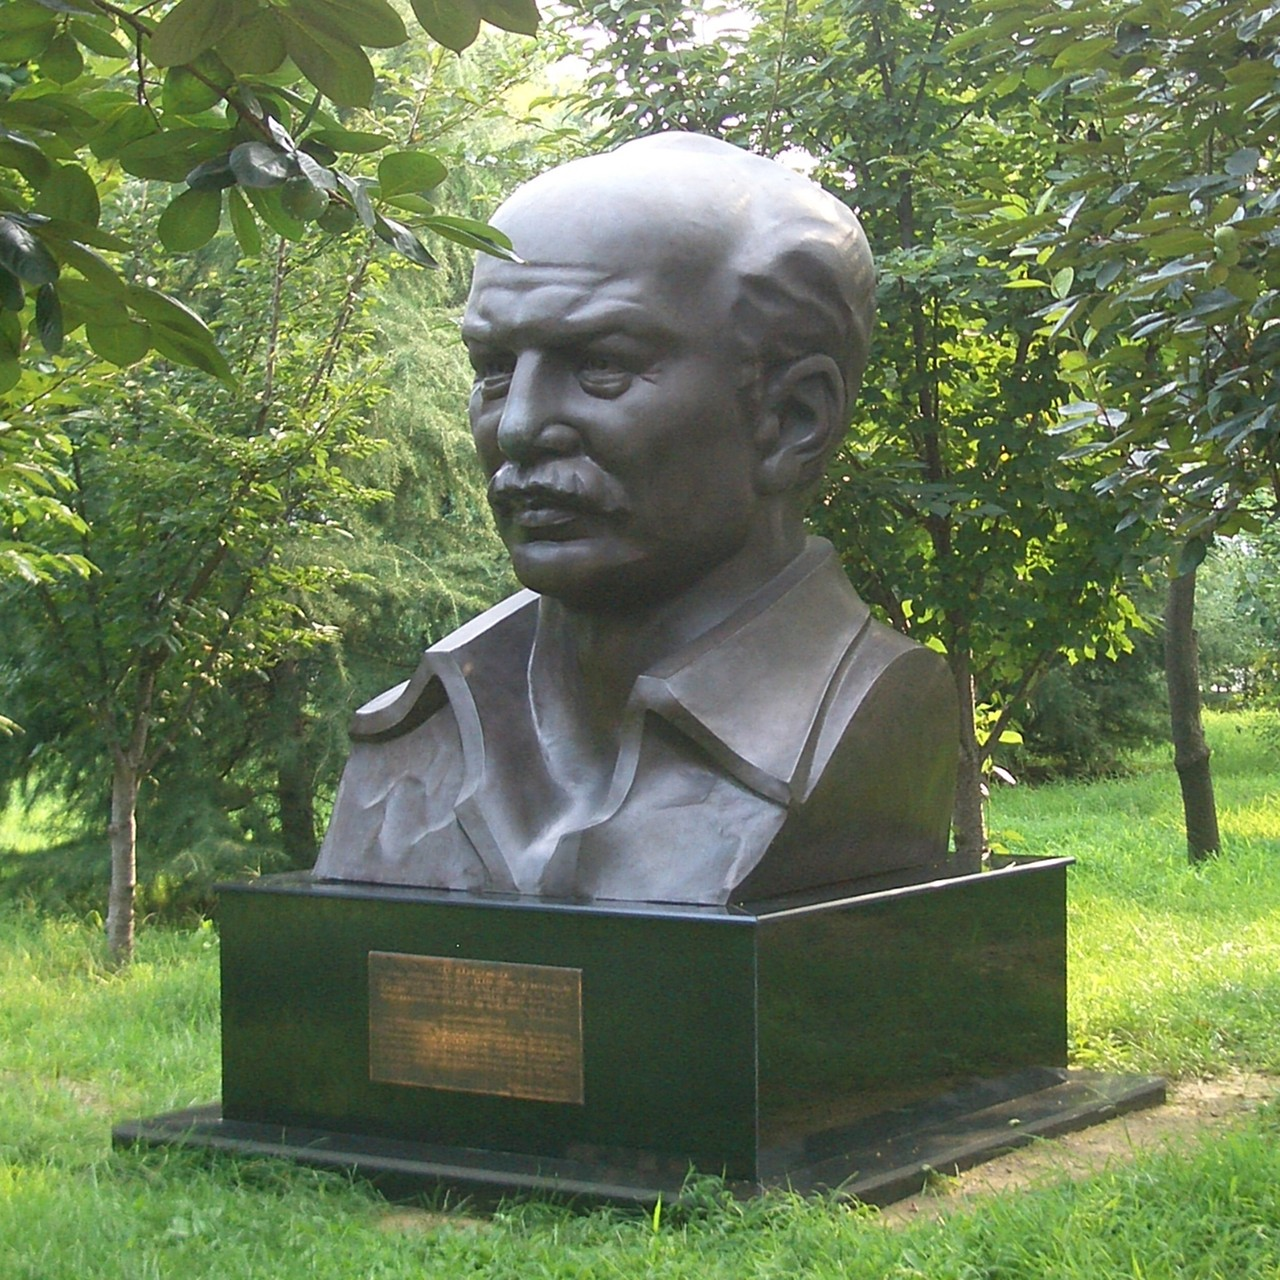 Dr. Norman Bethune, Monumento en China.